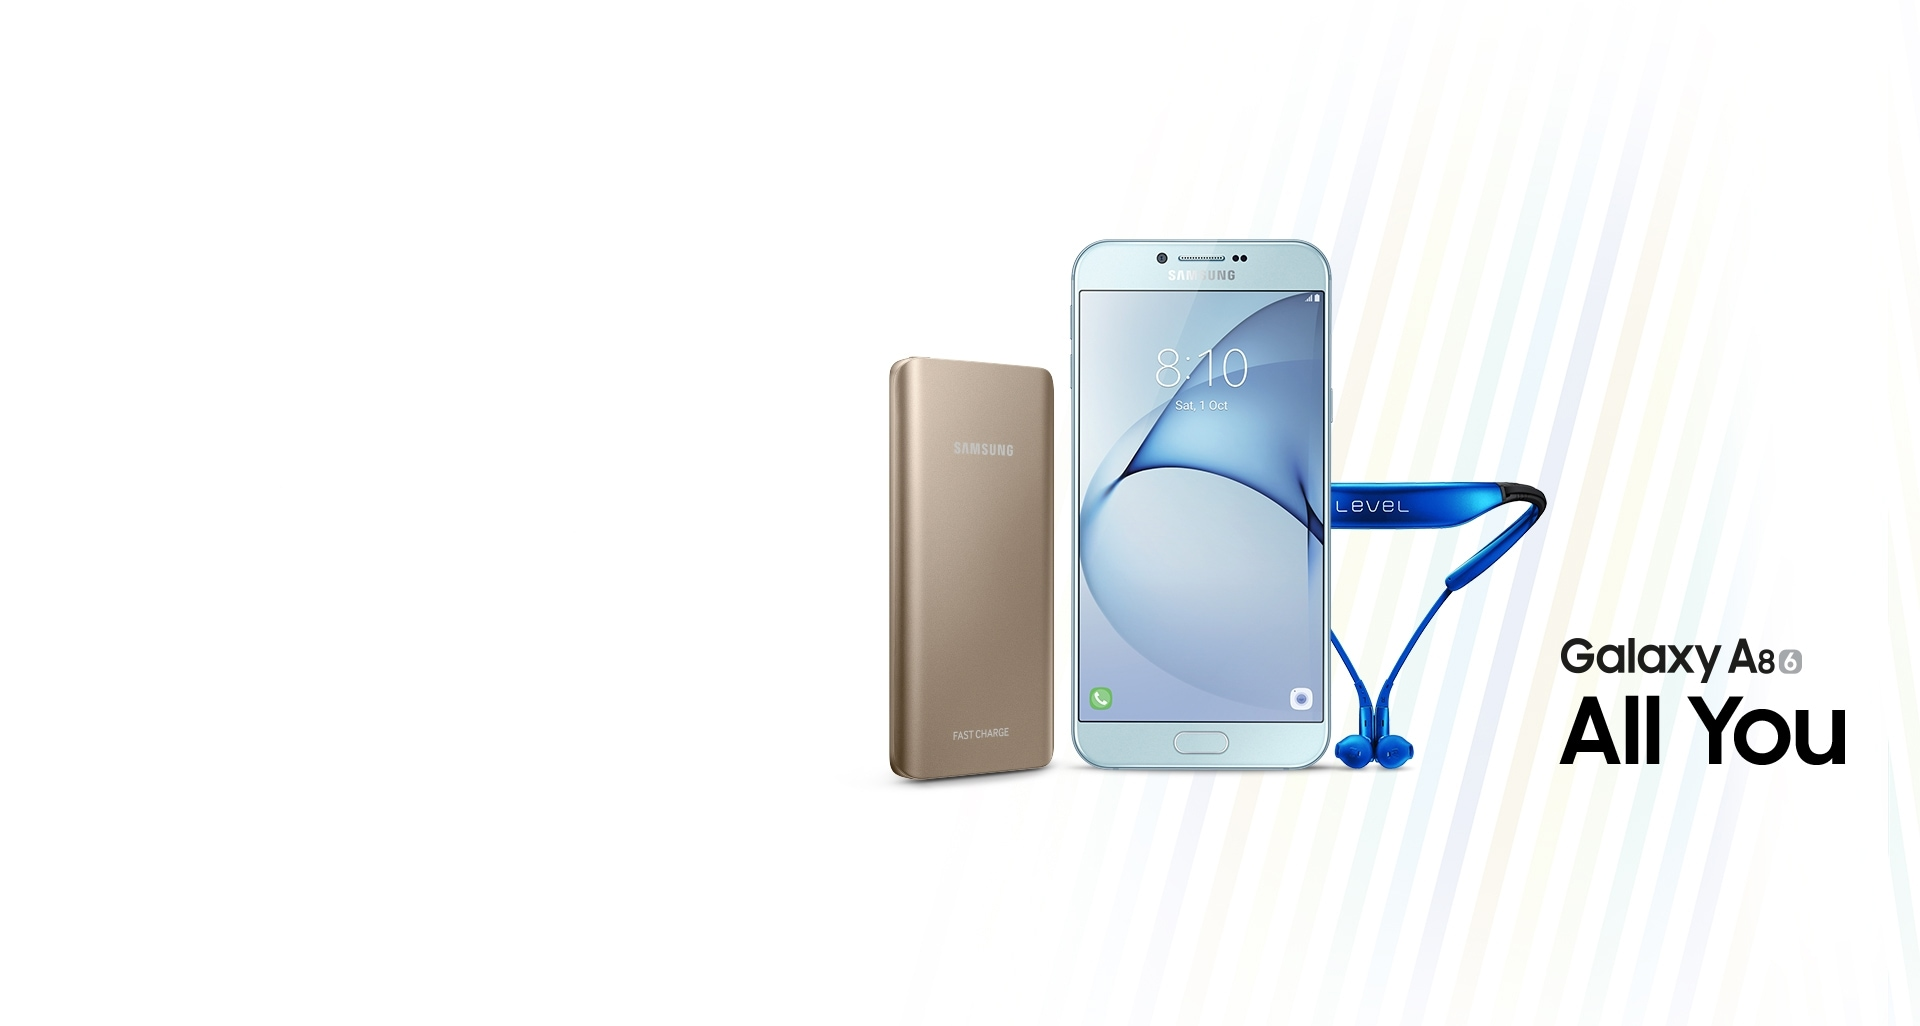 Buy Galaxy A8 2016 and get  Level U & Battery Pack Free